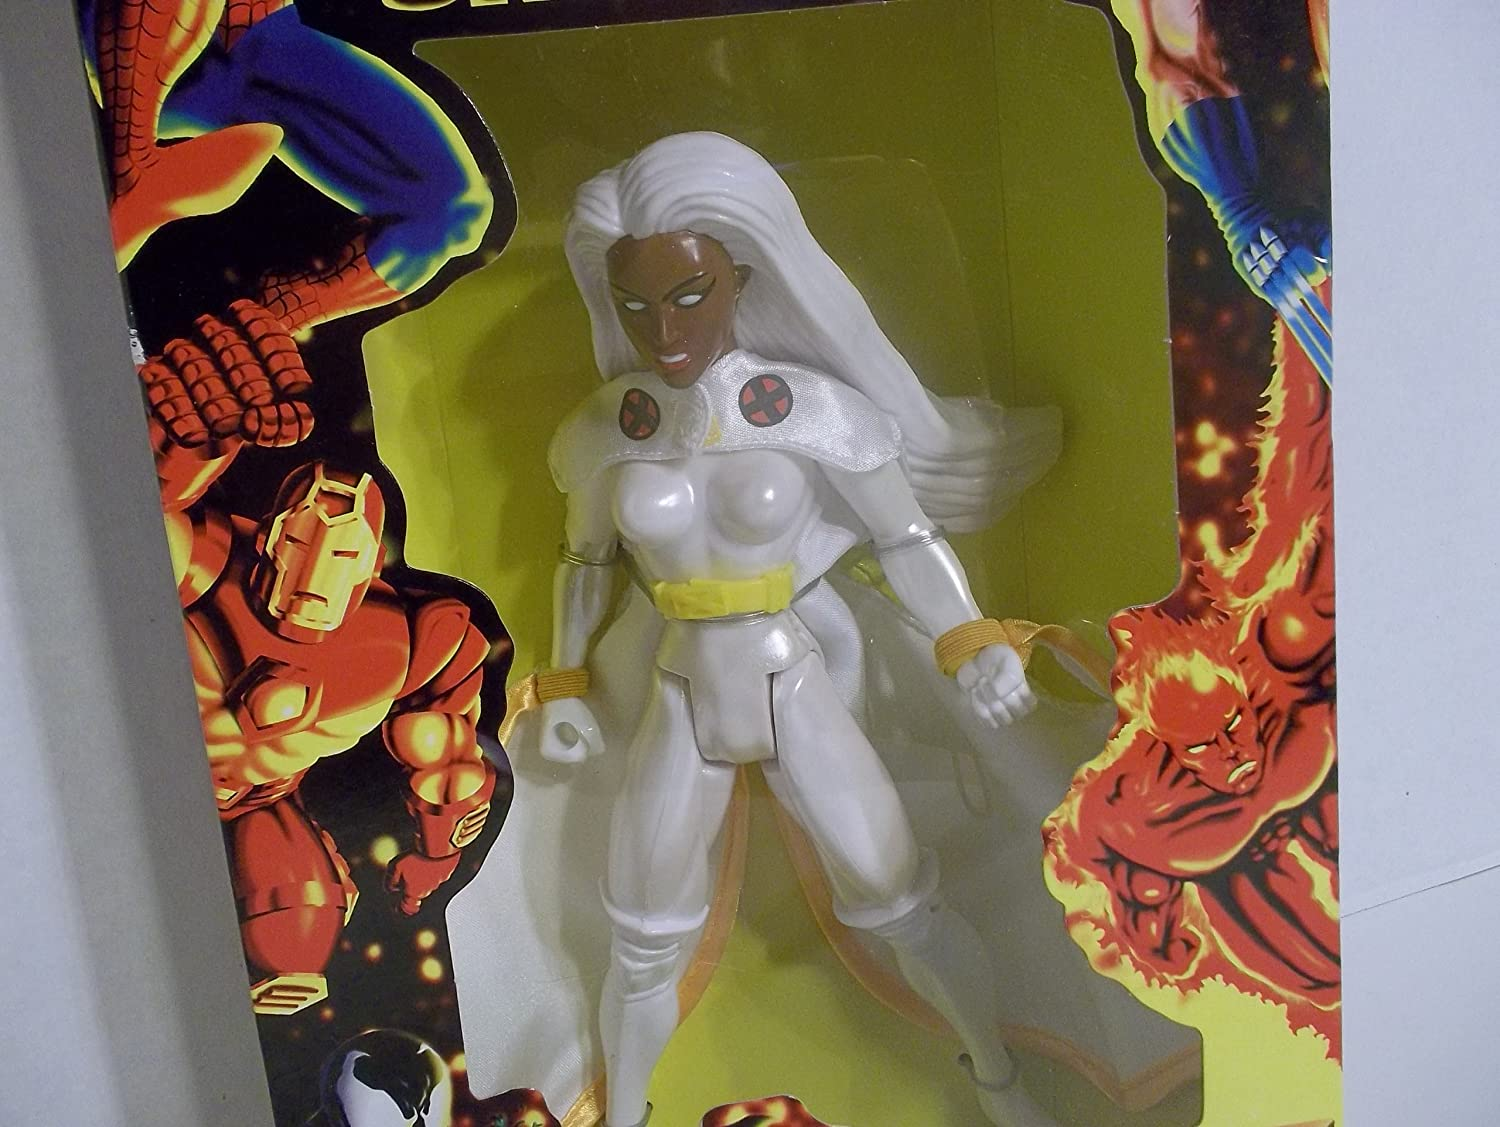 MARVEL UNIVERSE STORM 10 FULLY POSEABLE FIGURE by Marvel Comics